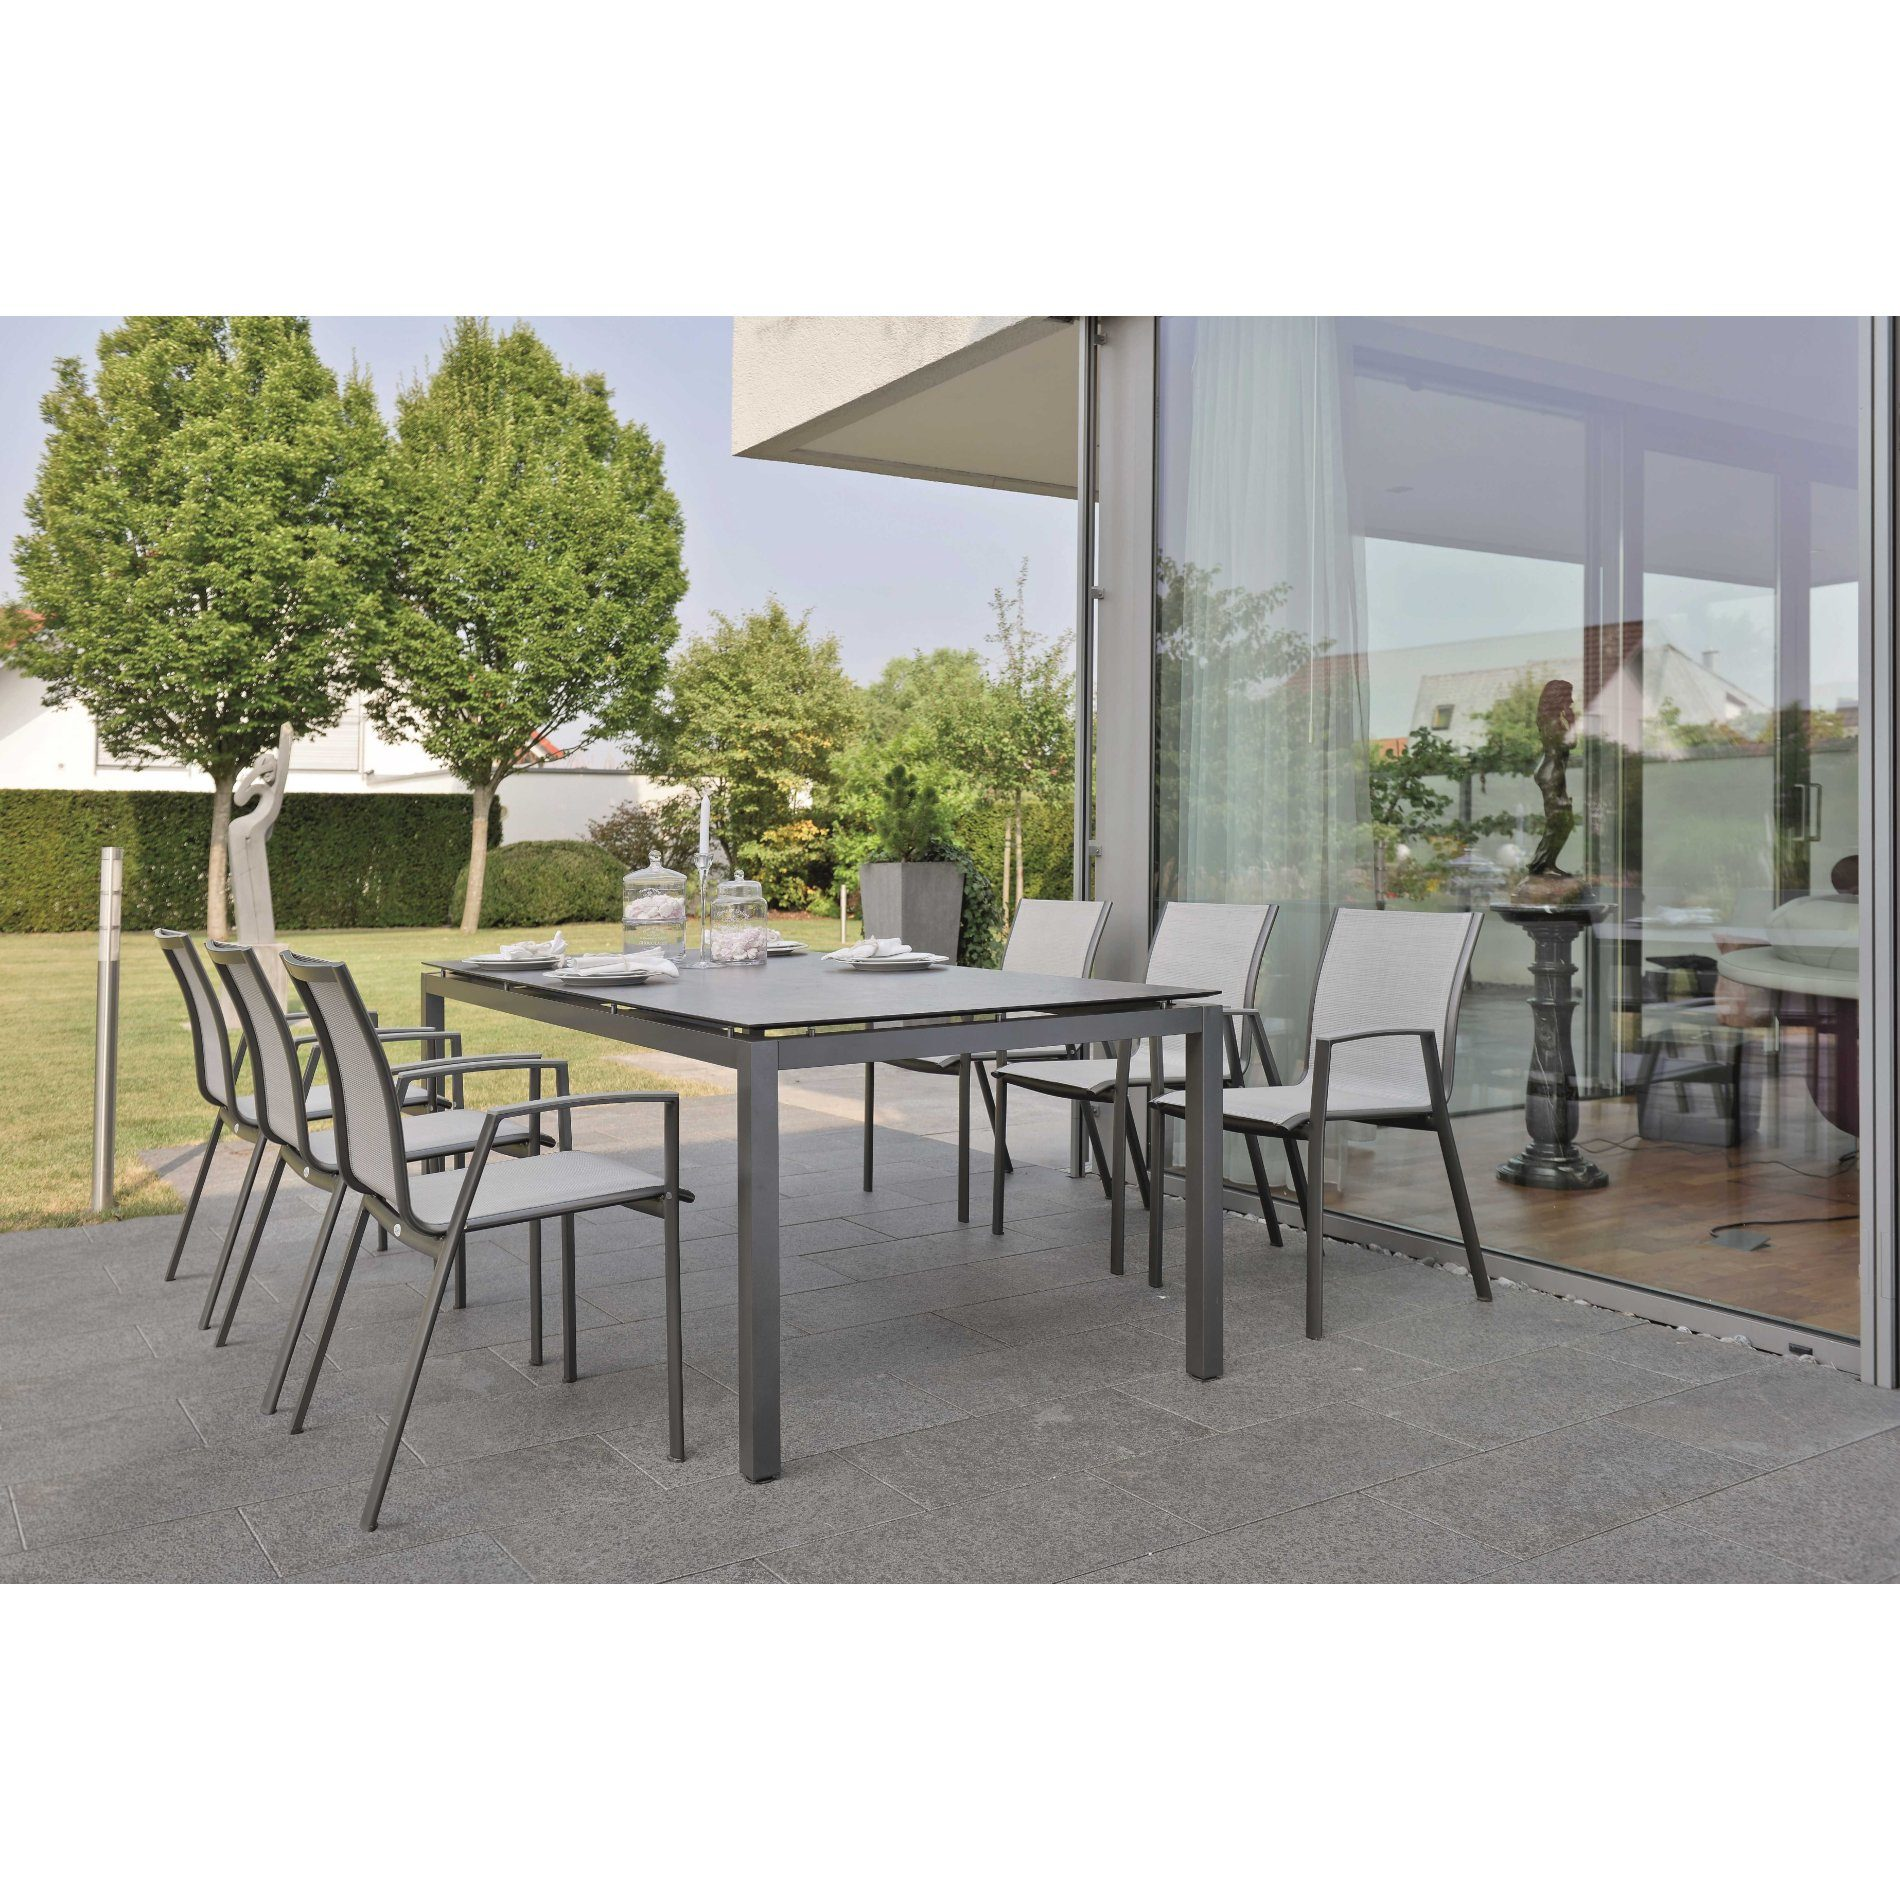 stern gartenm bel set mit stuhl ron und tisch aluminium. Black Bedroom Furniture Sets. Home Design Ideas